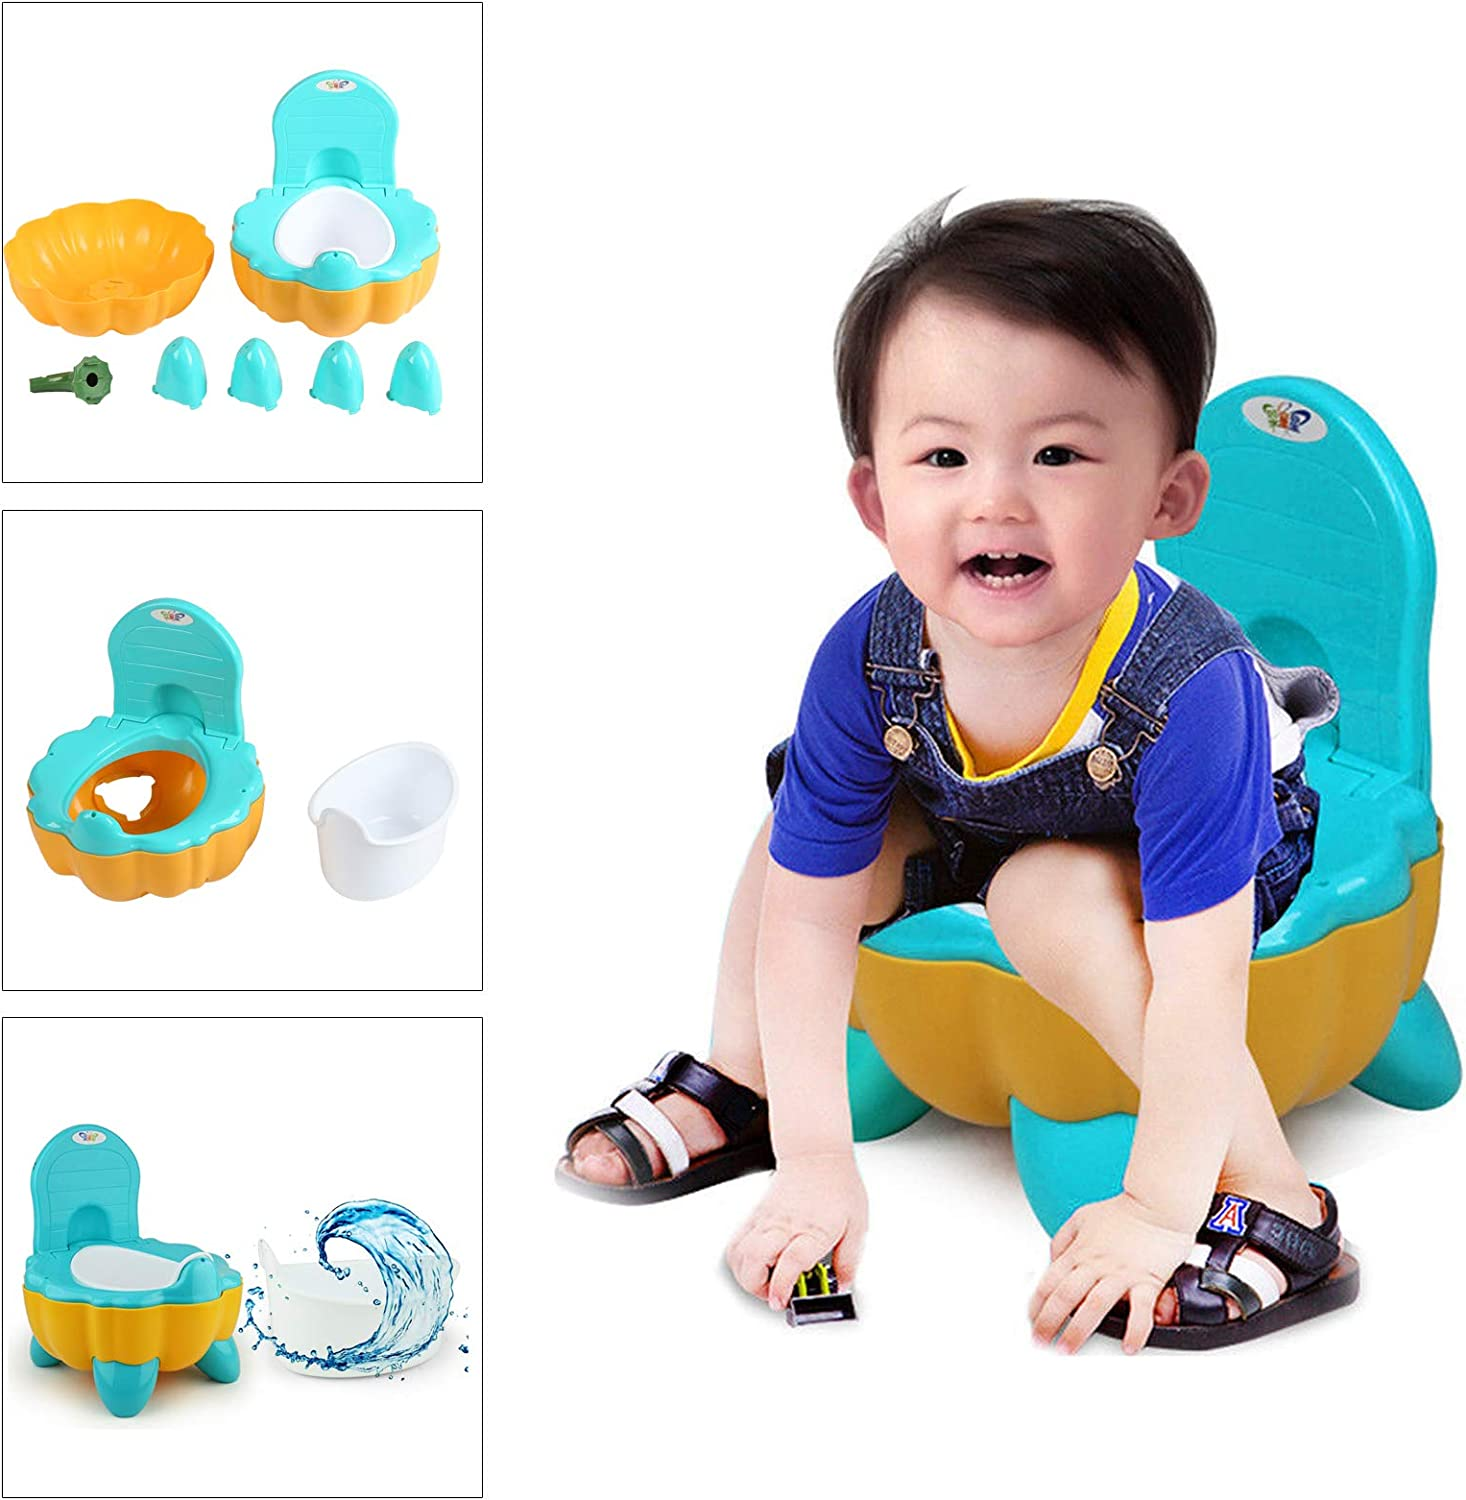 PetHot Training Carry Potty Carton Toilet Kids Baby Urinal Potty Toddler Children Toilet Training for 0-6 Years Old Babies